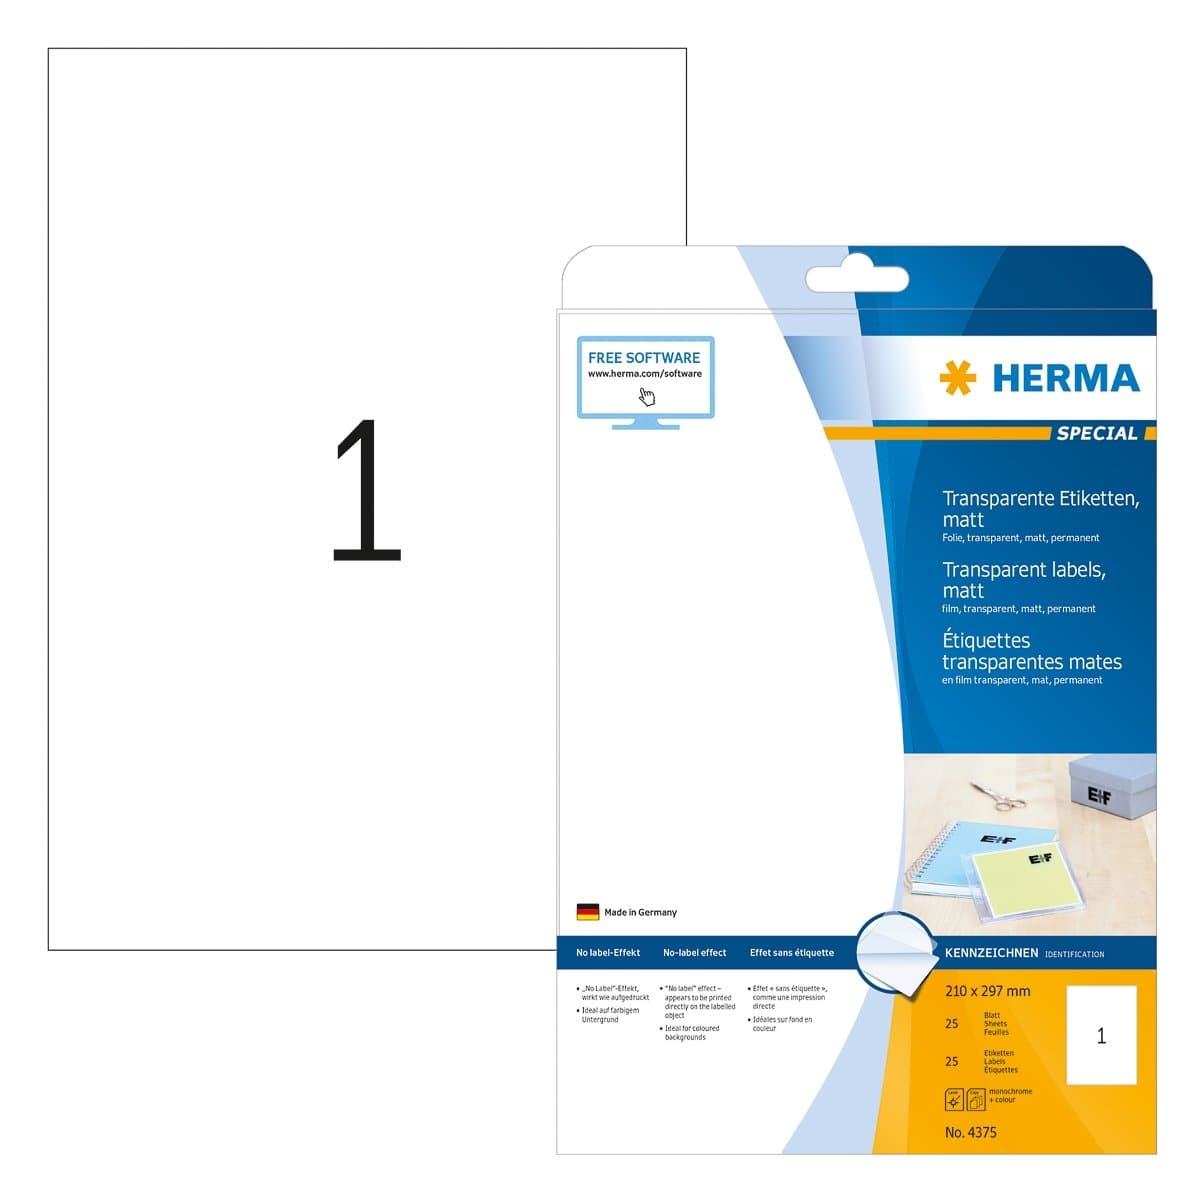 Herma Transparent Label, no-label-effect, A4 210 x 297 mm, 25/pack, Transparent matt